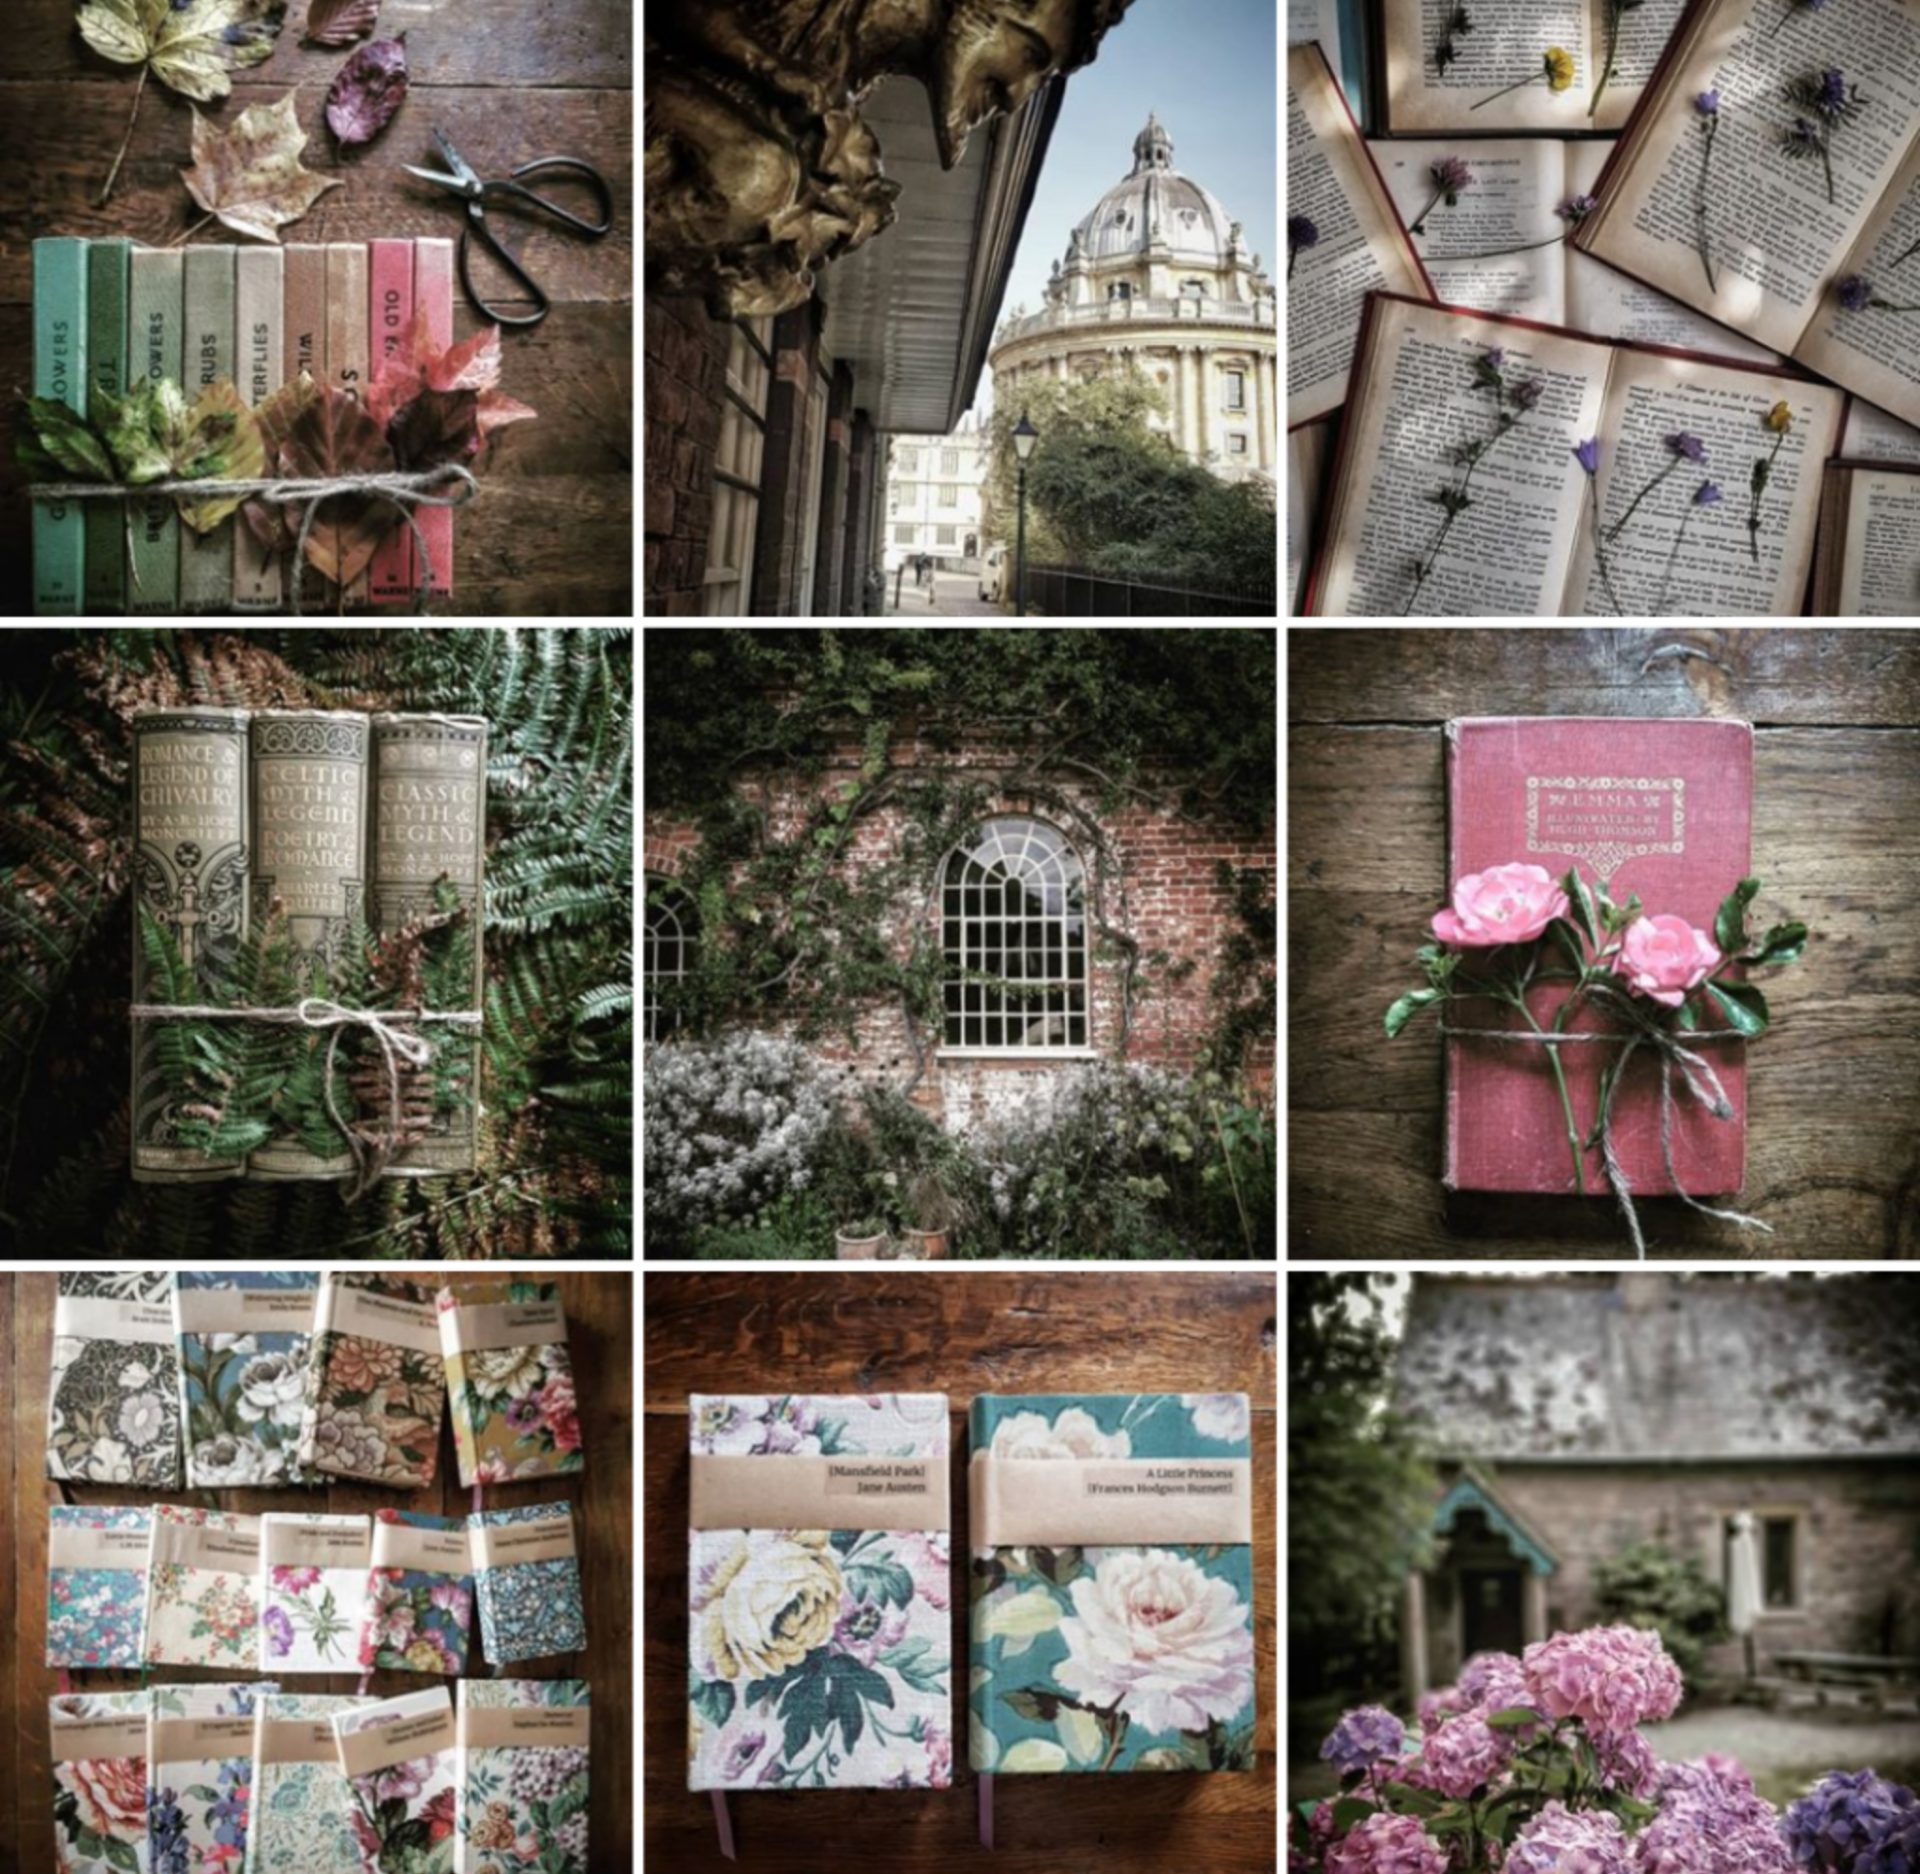 Forget-Me-Not-Originals-Instagram-page-for-Interview-with-a-Bookstagrammer